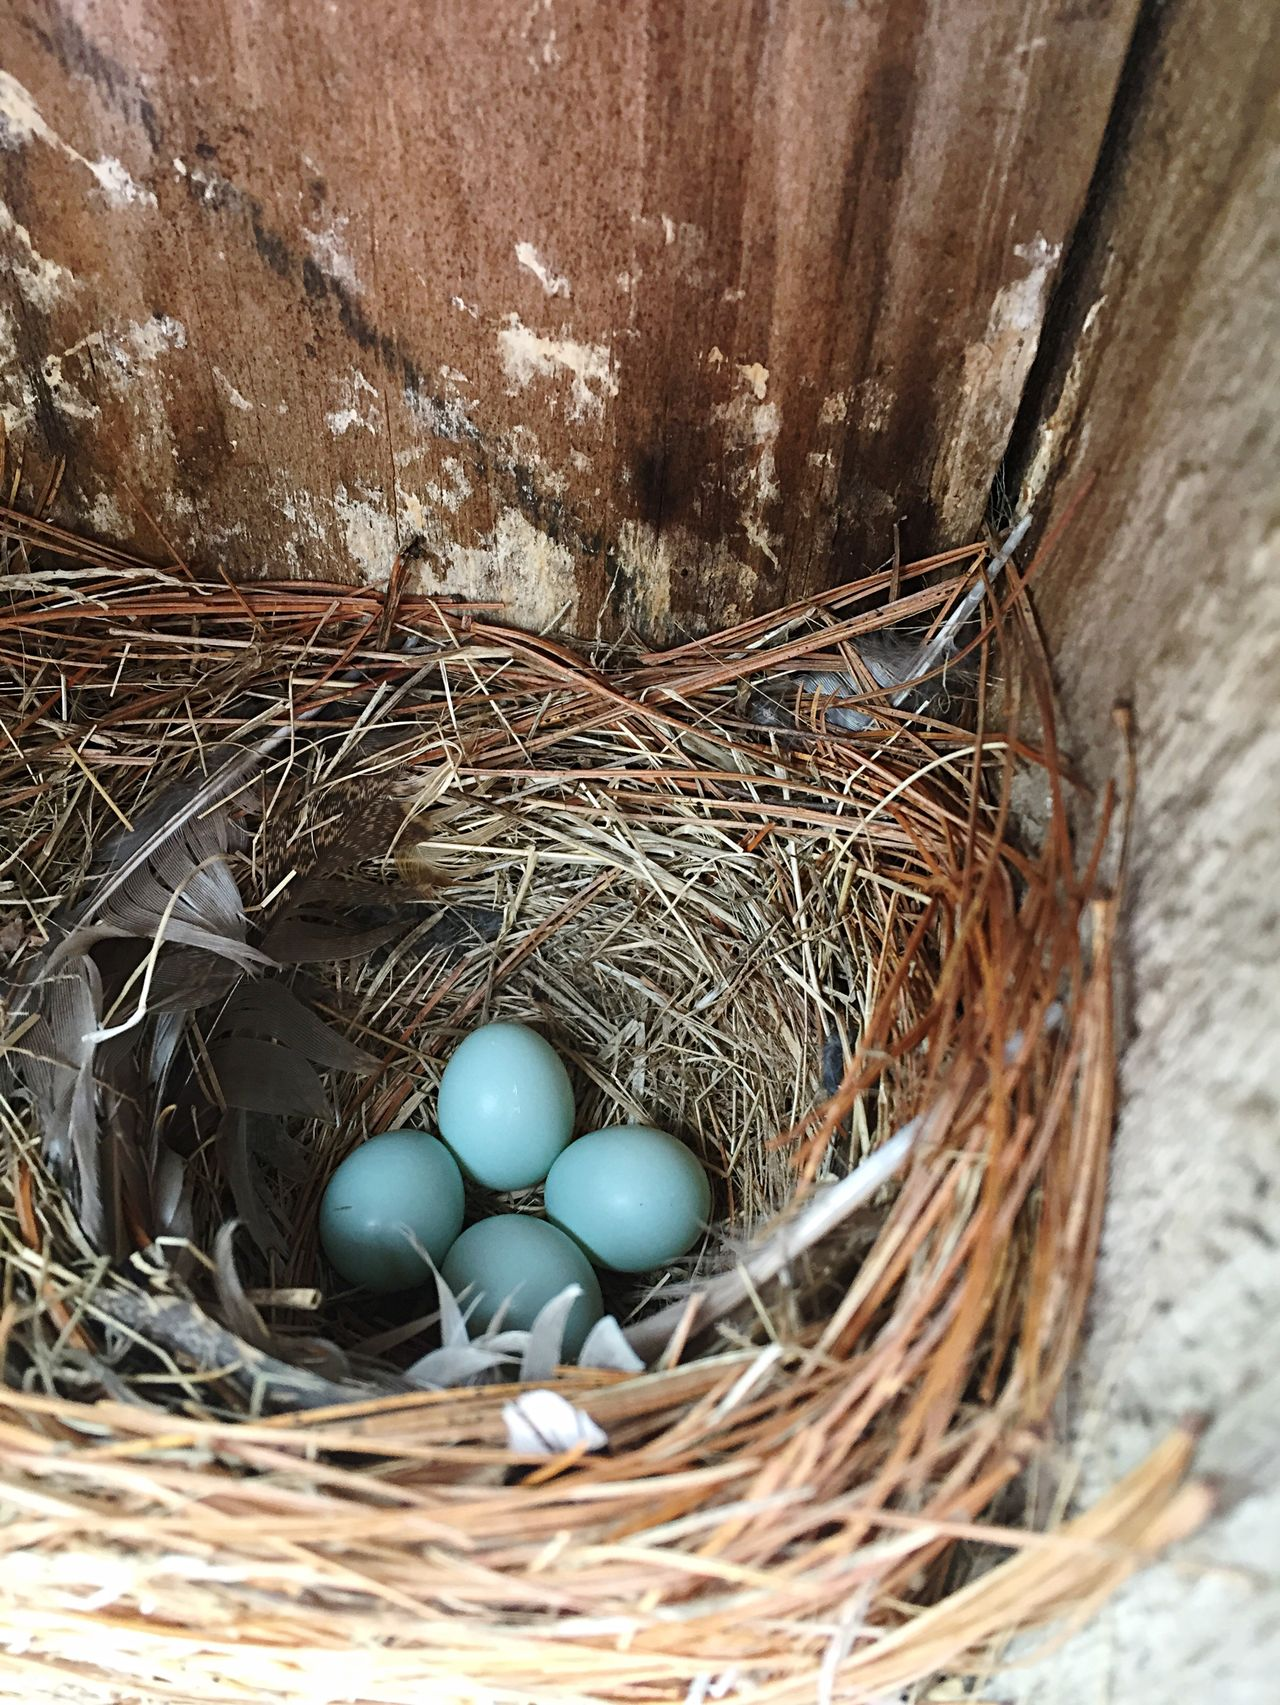 Bluebird Eggs spring Life nest Blue Birdhouse Love Cozy oval Egg Wisconsin eastern bluebird project Feather  beauty in nature